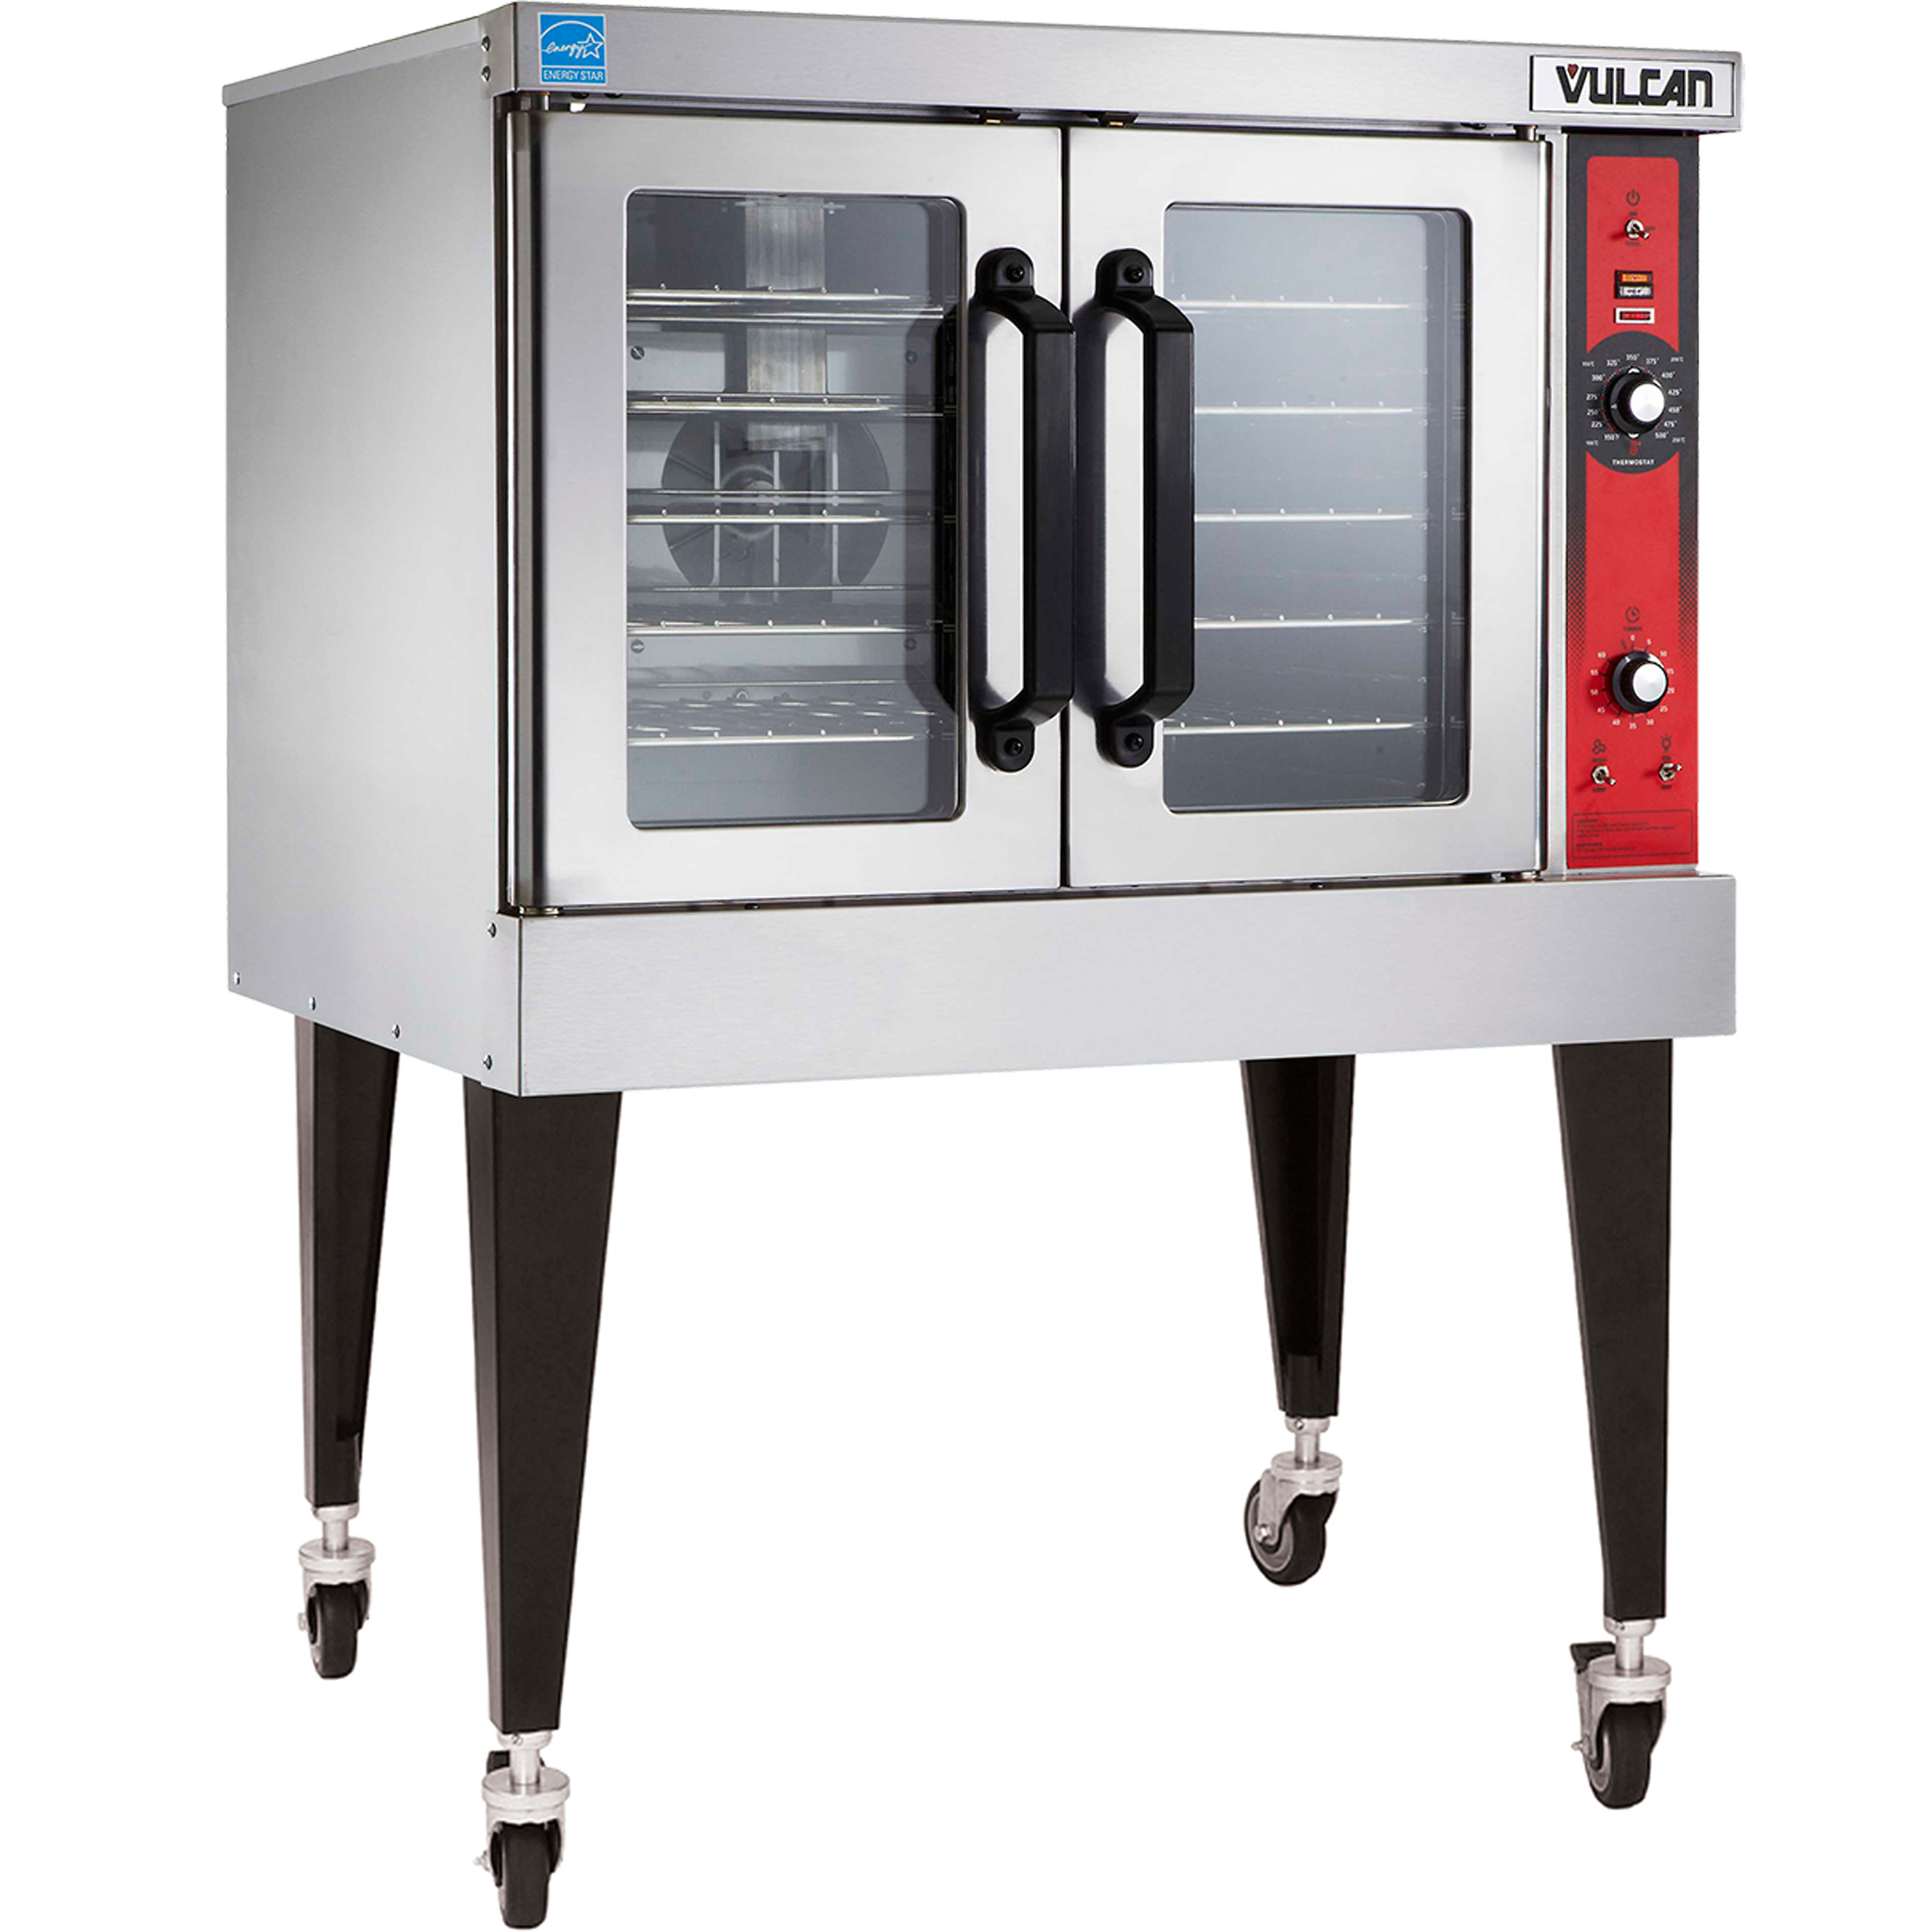 Vulcan VC6GD convection oven, gas